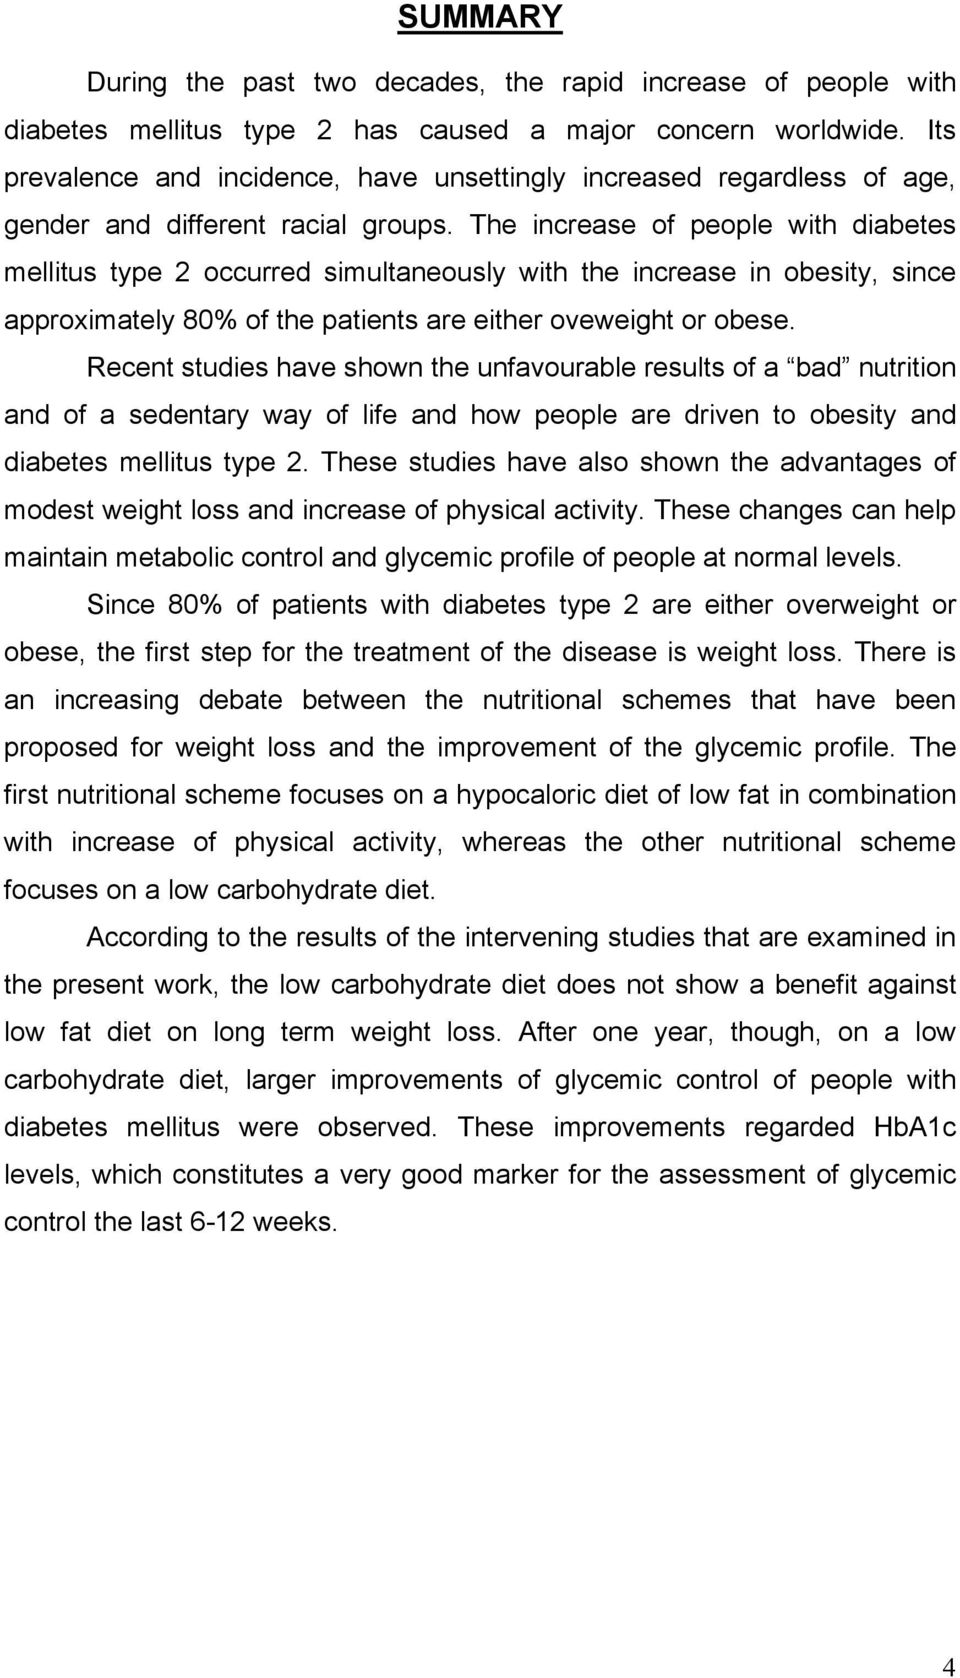 The increase of people with diabetes mellitus type 2 occurred simultaneously with the increase in obesity, since approximately 80% of the patients are either oveweight or obese.